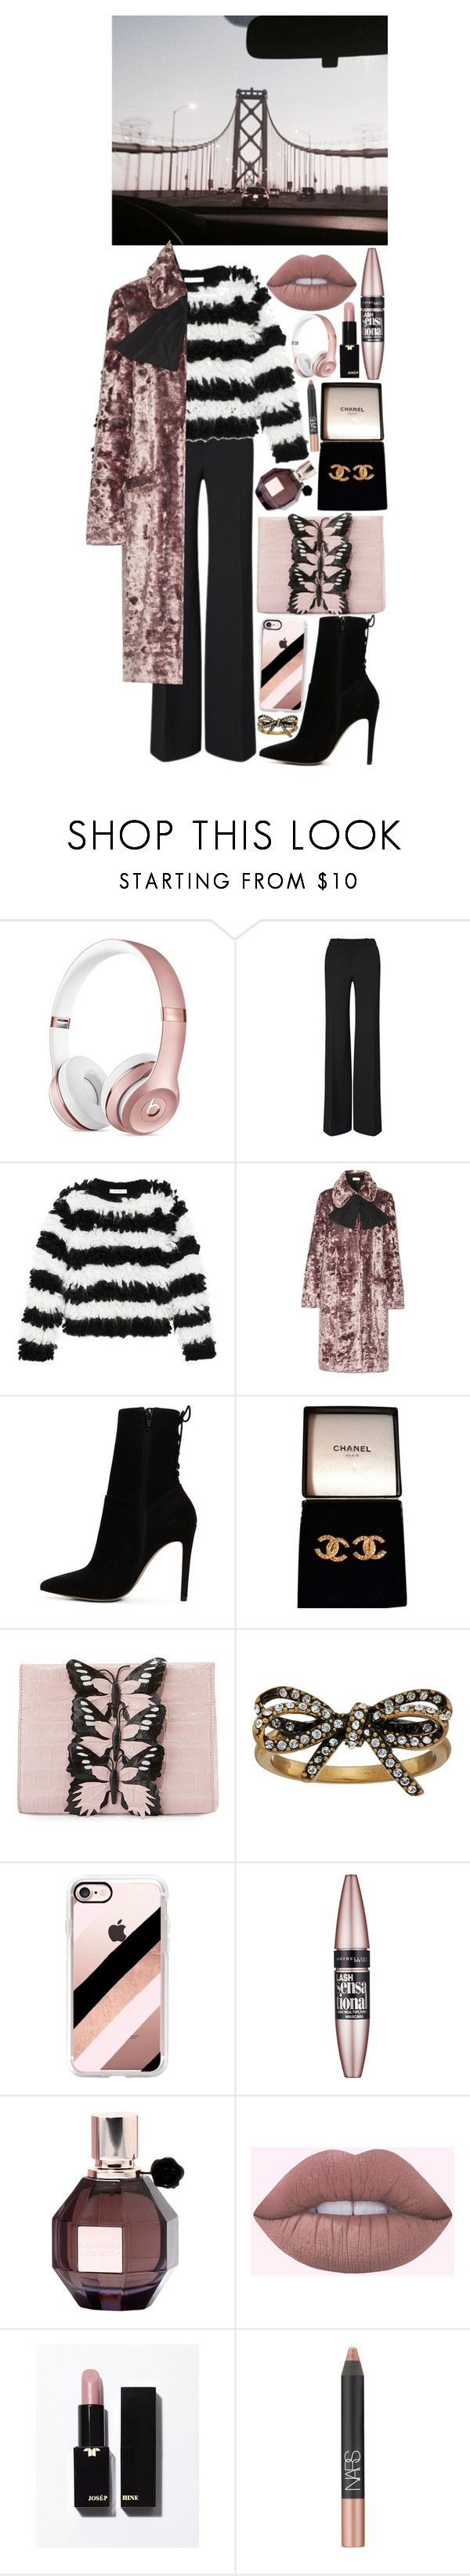 """""""caught in the middle"""" by loveselena22 ❤ liked on Polyvore featuring Roland Mouret, MaxMara, Isa Arfen, ALDO, Chanel, Nancy Gonzalez, Marc Jacobs, Casetify, Maybelline and Viktor & Rolf"""